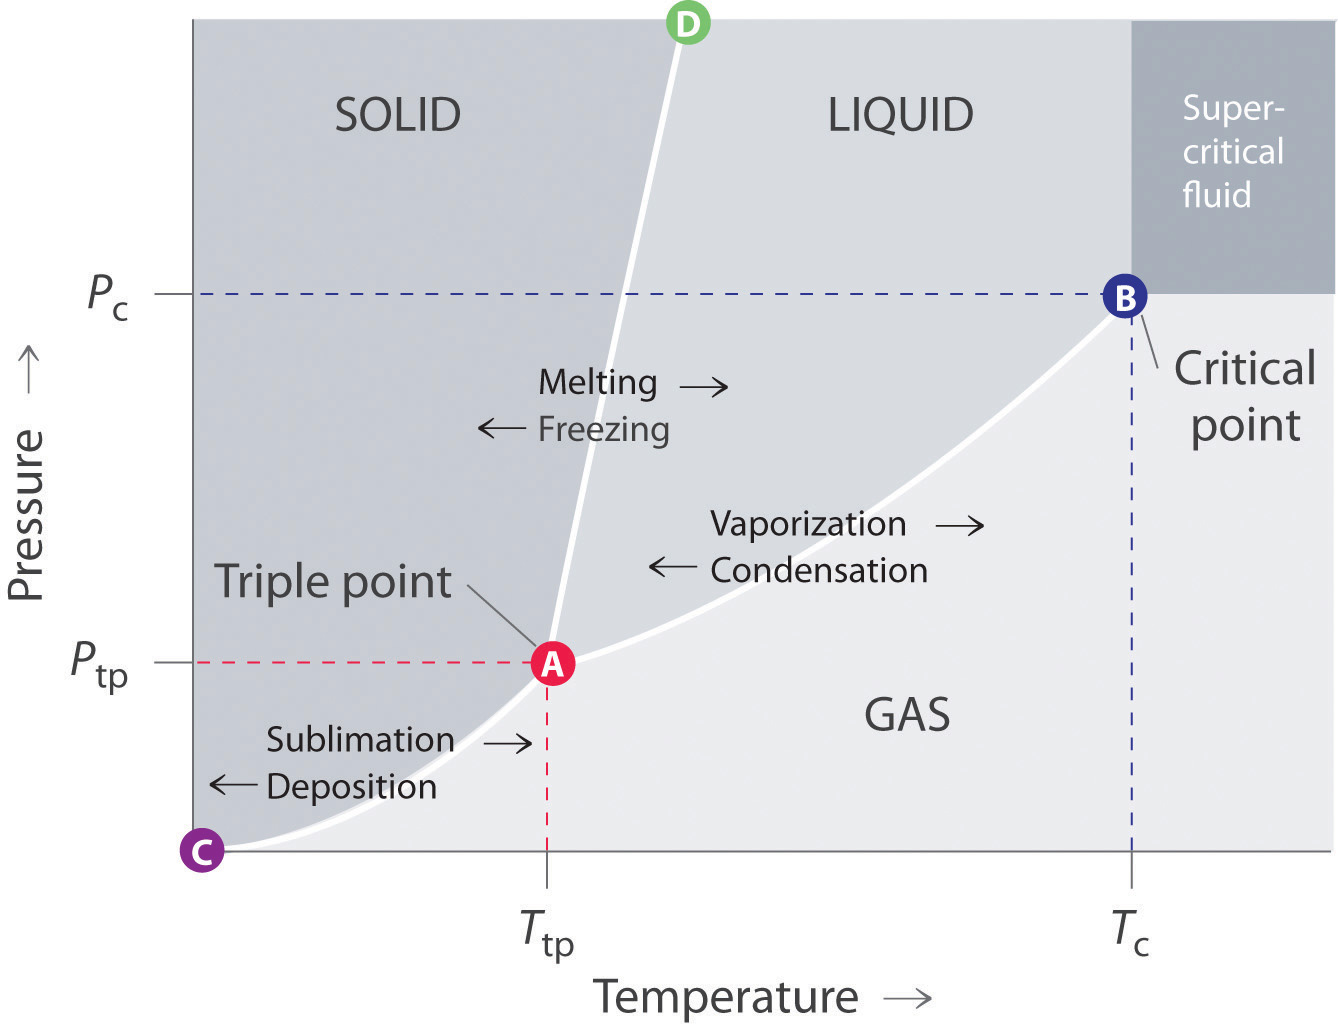 hight resolution of phase changes can also occur due to differing pressures as seen in this phase diagram different pressures at different pressures also change inter